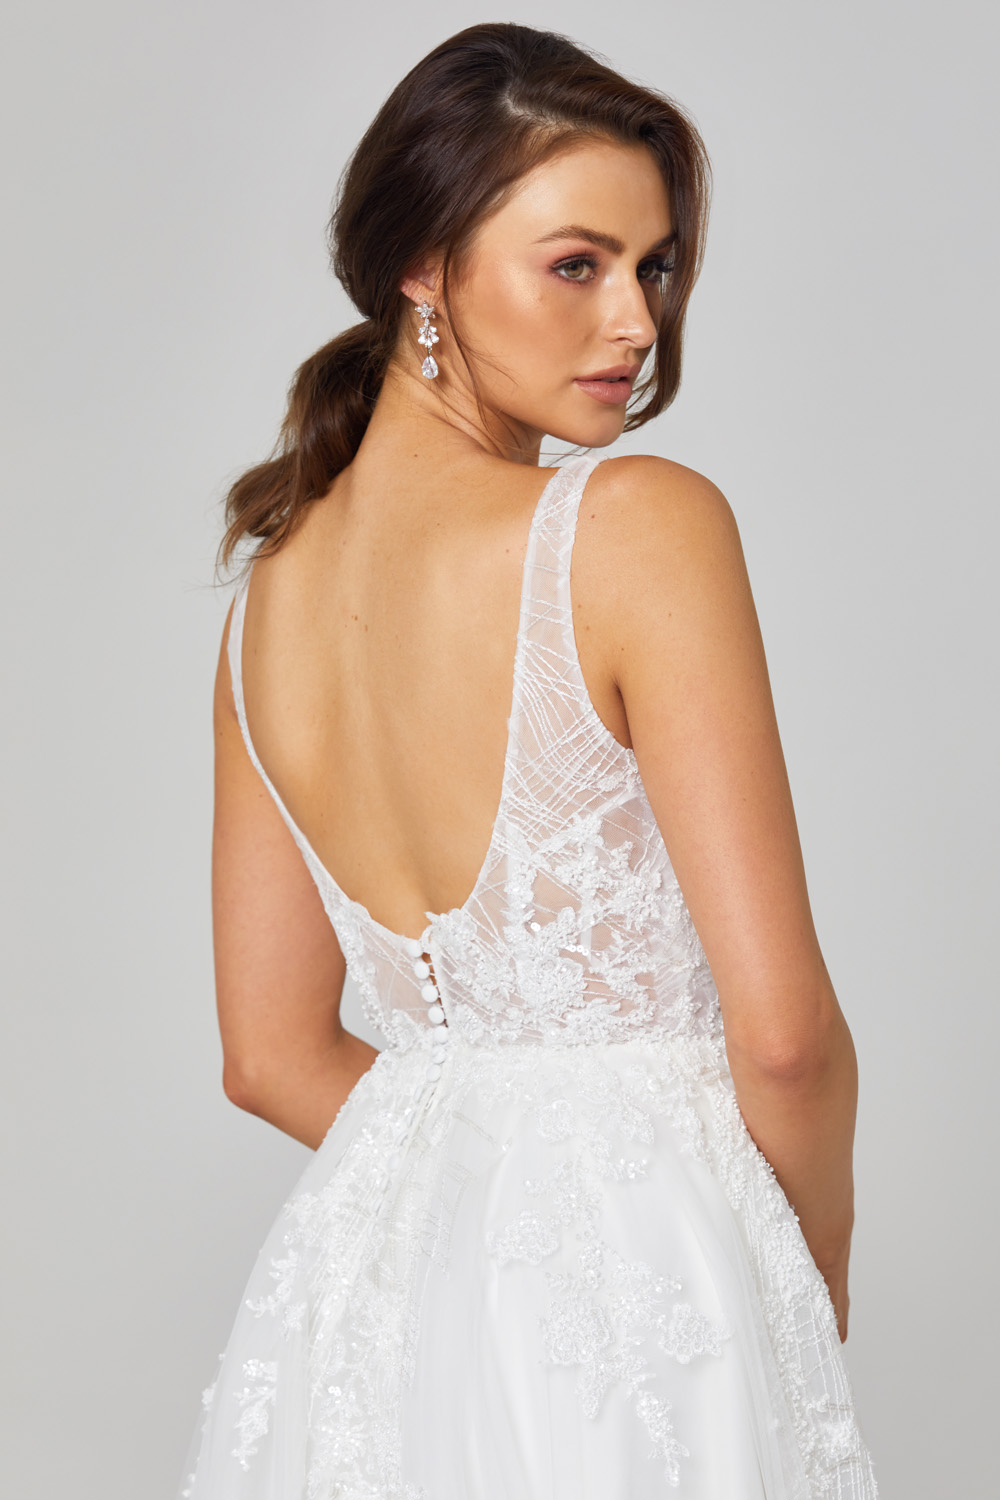 Rosie A-Line Lace Wedding Dress - TC292 close up back